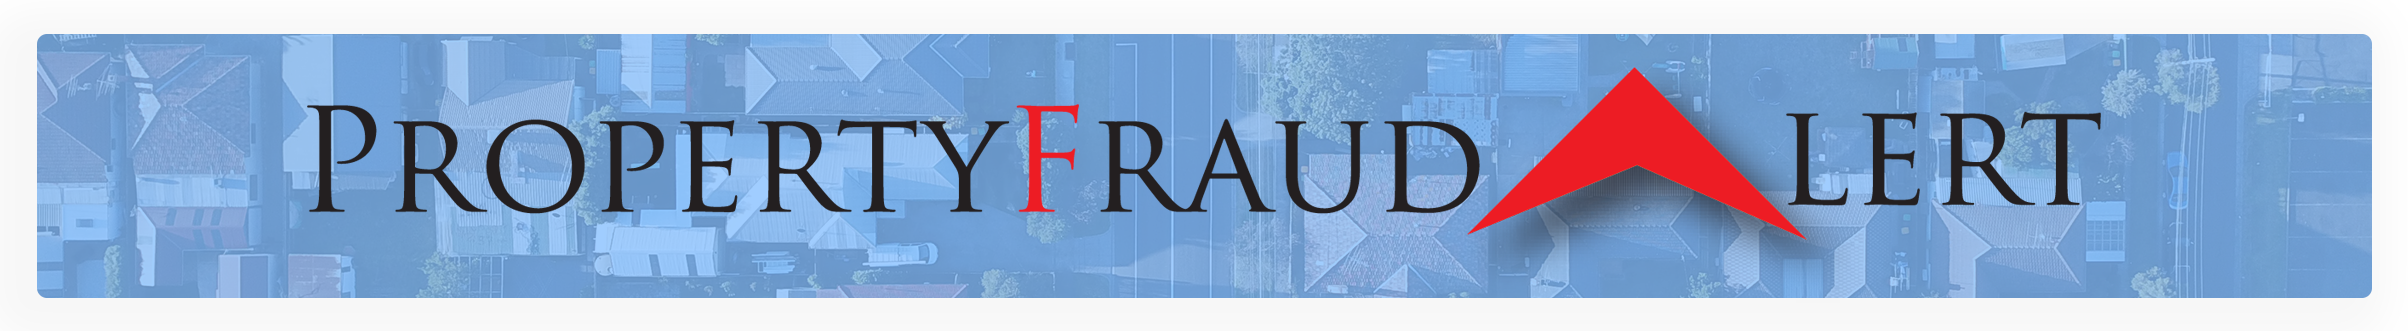 Property Fraud Alert Opens in new window